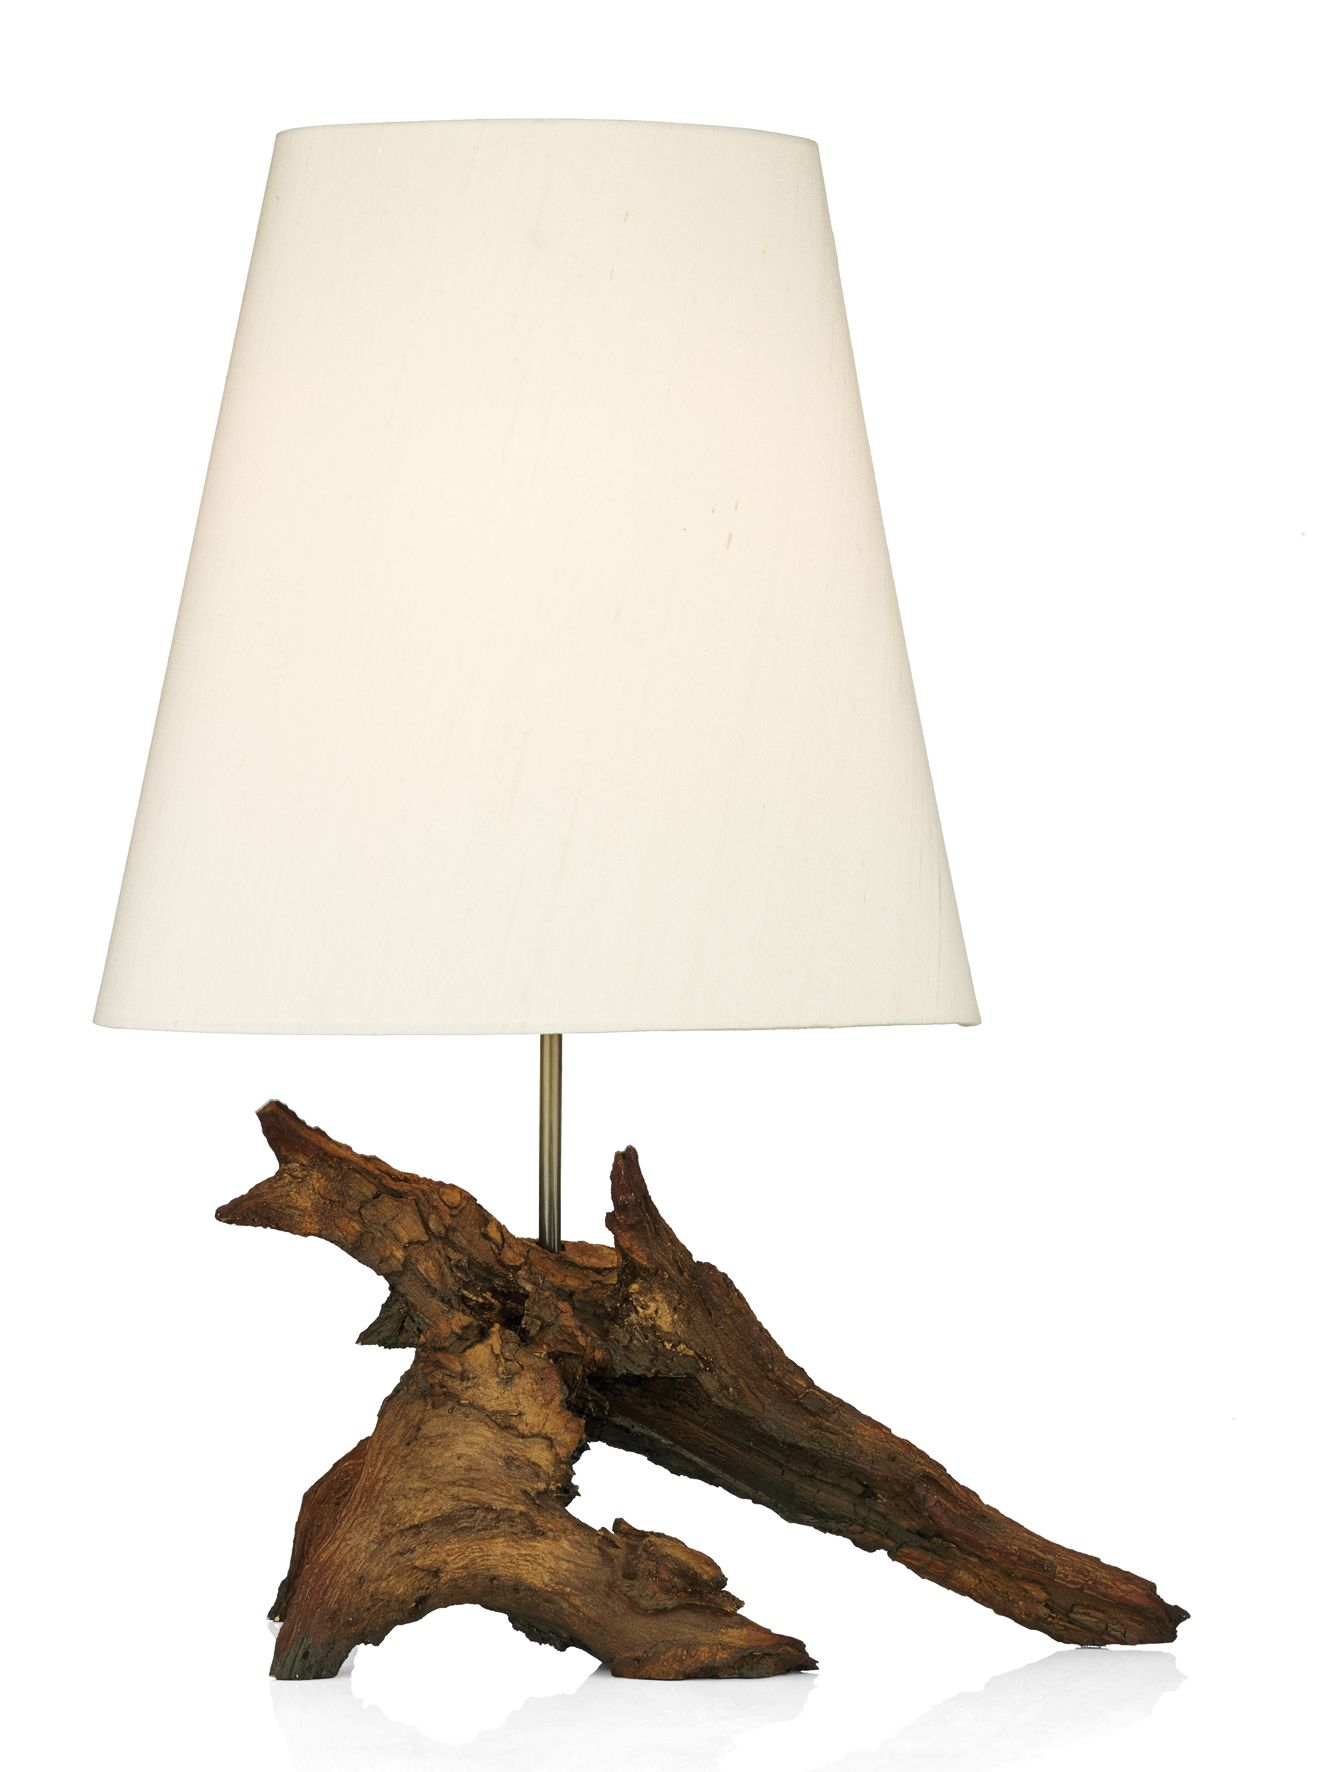 SHE4080   SHERWOOD WOOD TABLE LAMP BASE ONLY SHOWN WITH SHE1615 IVORY SILK  SHADE (AVAILABLE